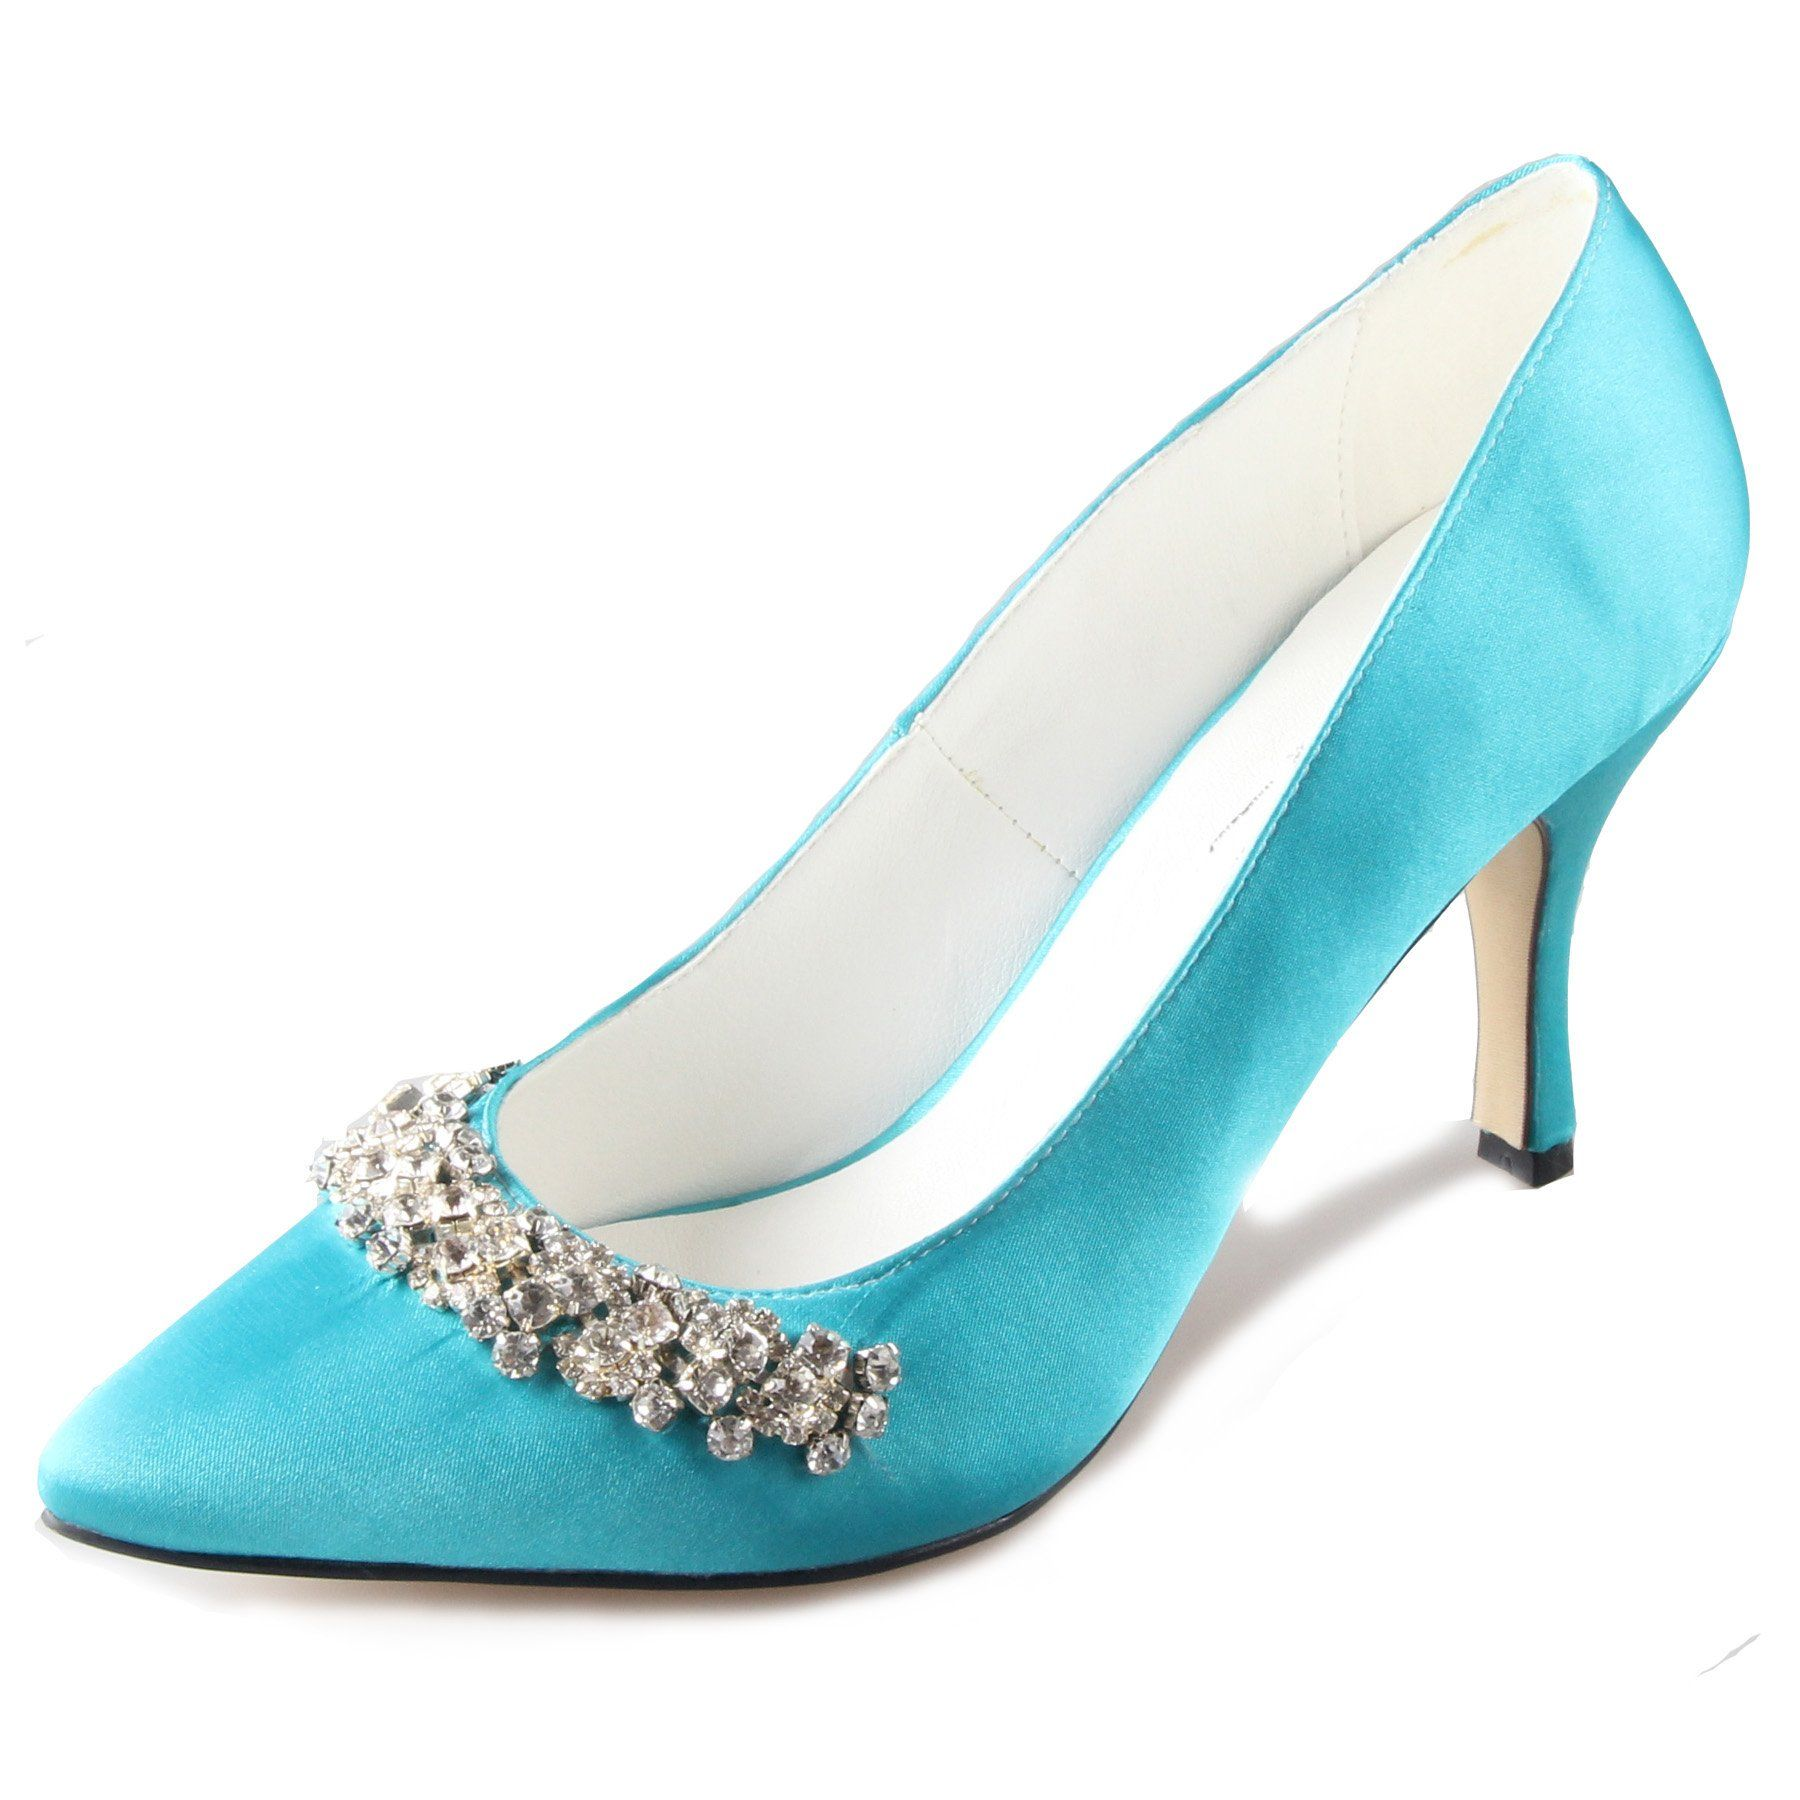 Creativesugar women\'s turquoise satin shoes with crystals (6 ...